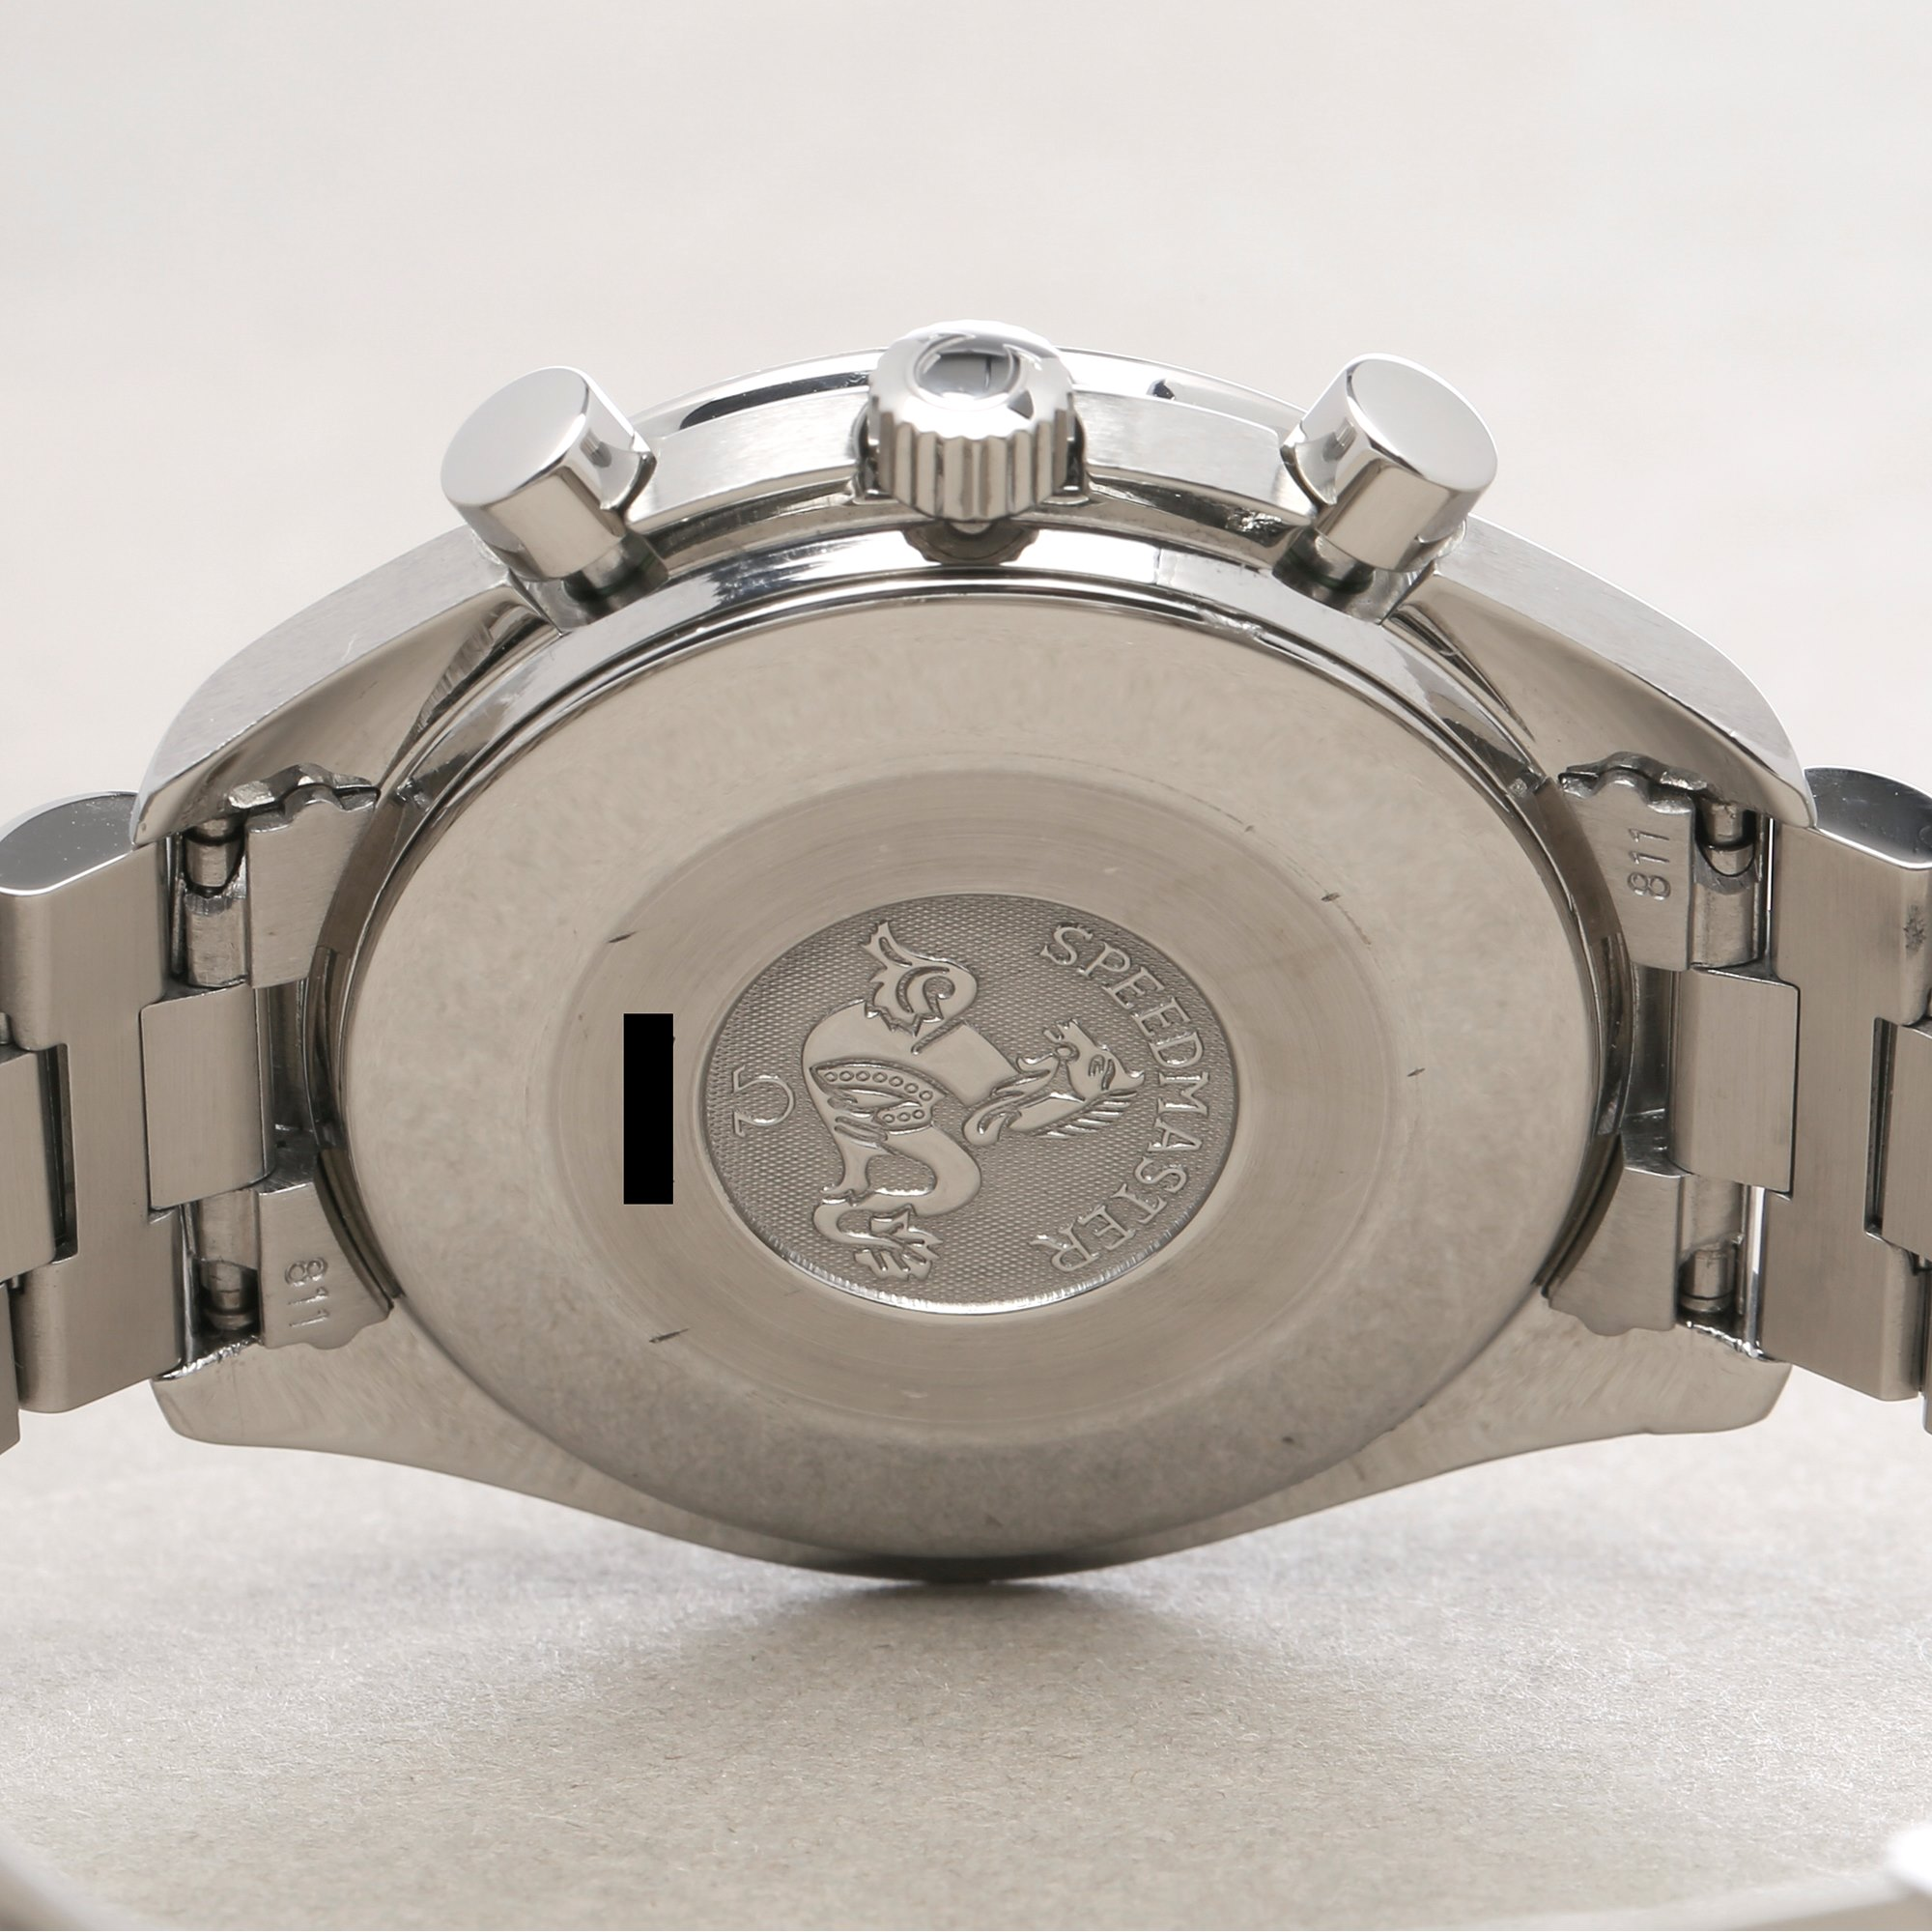 Omega Speedmaster Reduced Chronograph Roestvrij Staal 3510.50.00